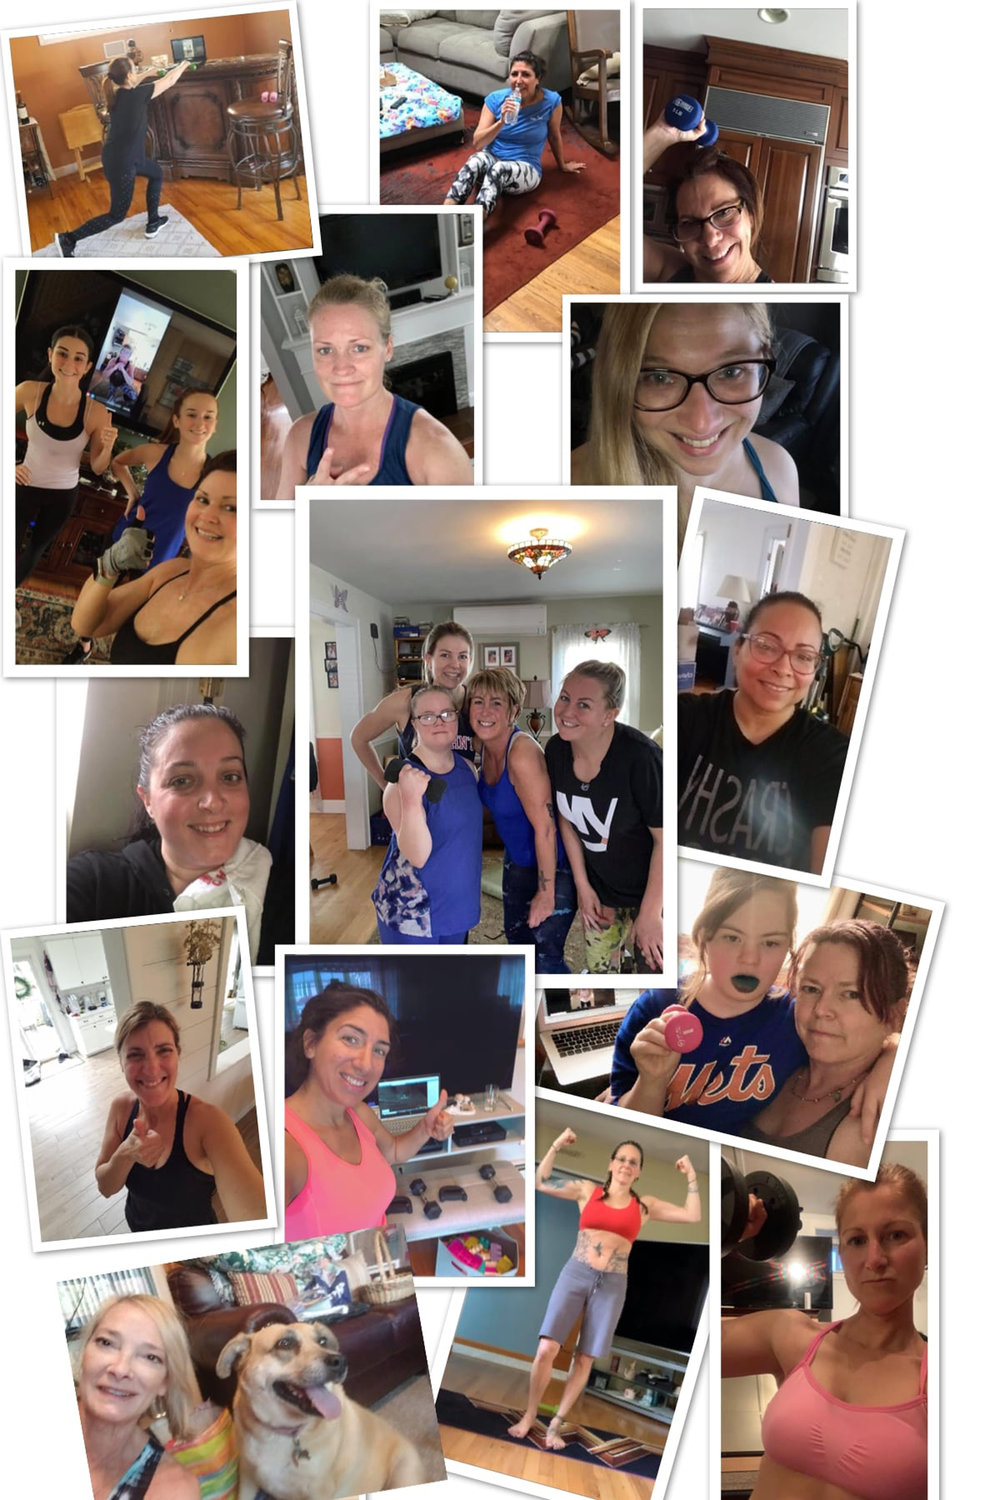 Participants in Theresa Foders's Terrible Theresa Training, on Facebook, shared photos of their workouts at home.